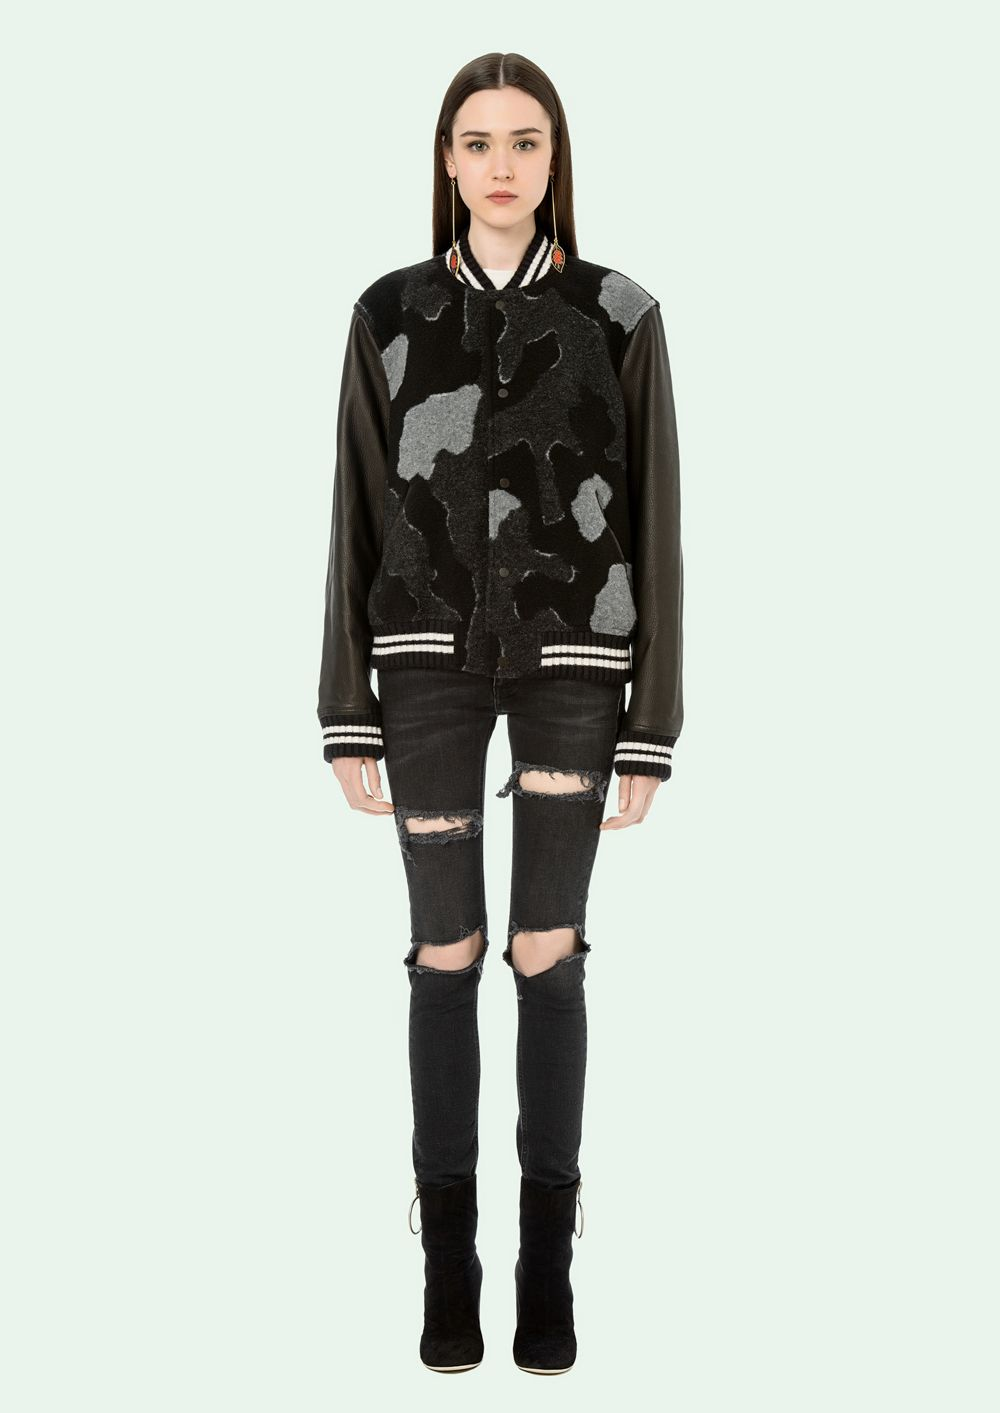 OFF WHITE - Leather Jacket - OffWhite